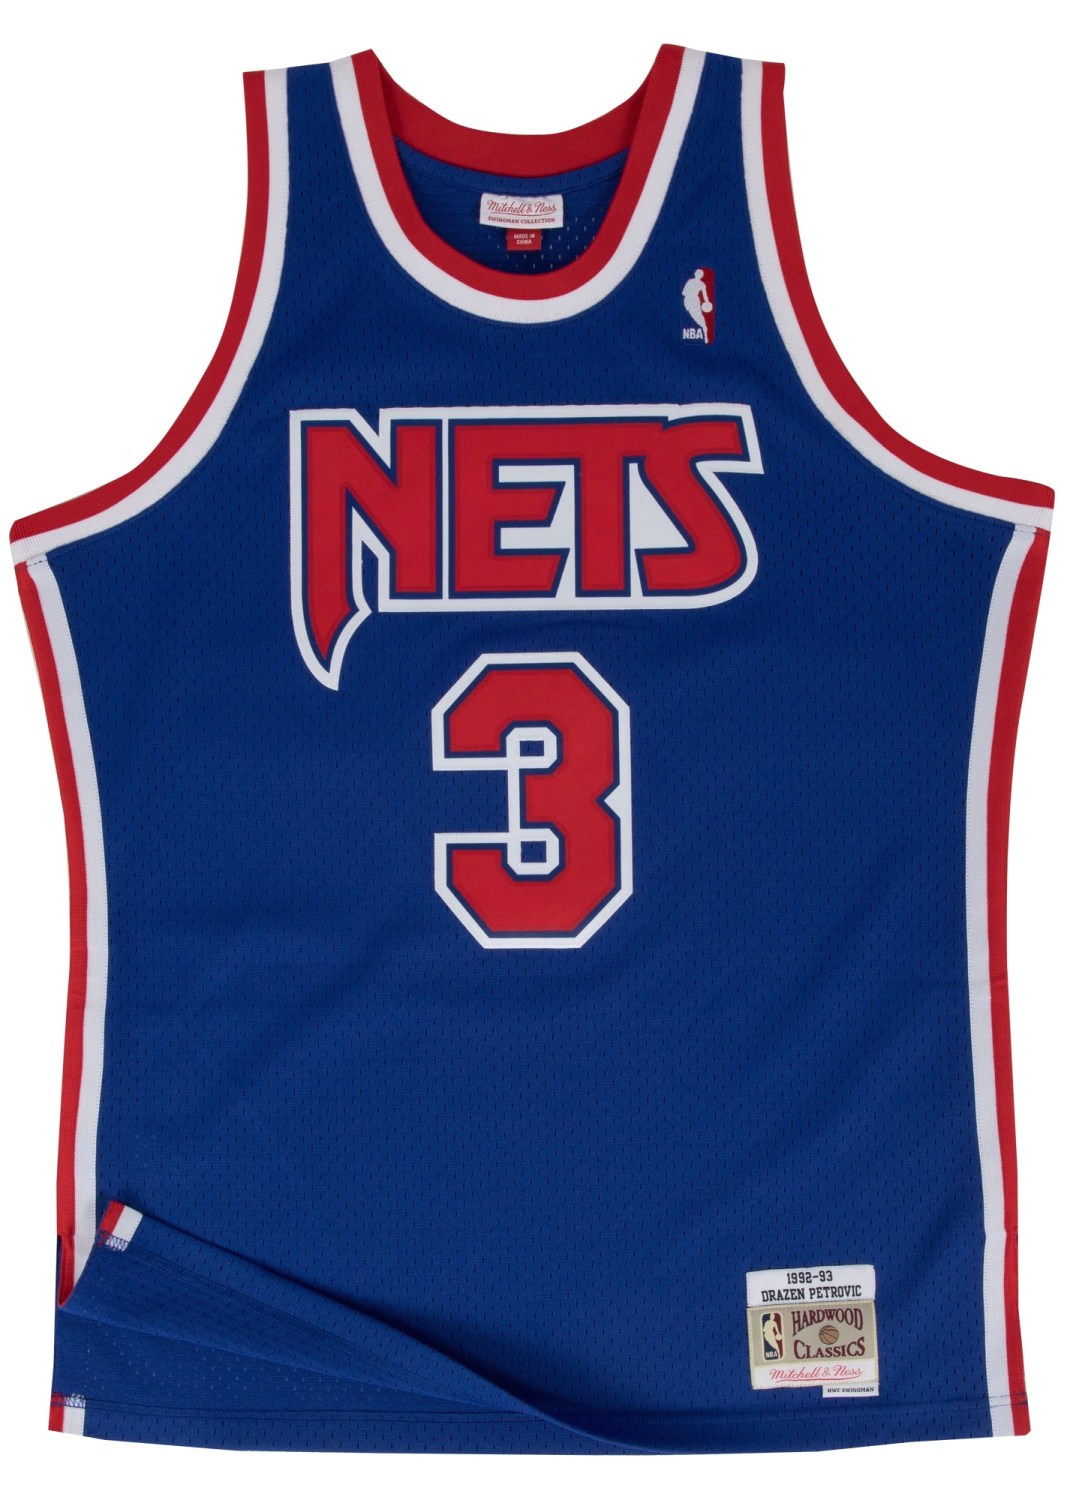 Drazen Petrovic New Jersey Nets Mitchell & Ness NBA Swingman 92-93 Jersey - Blue